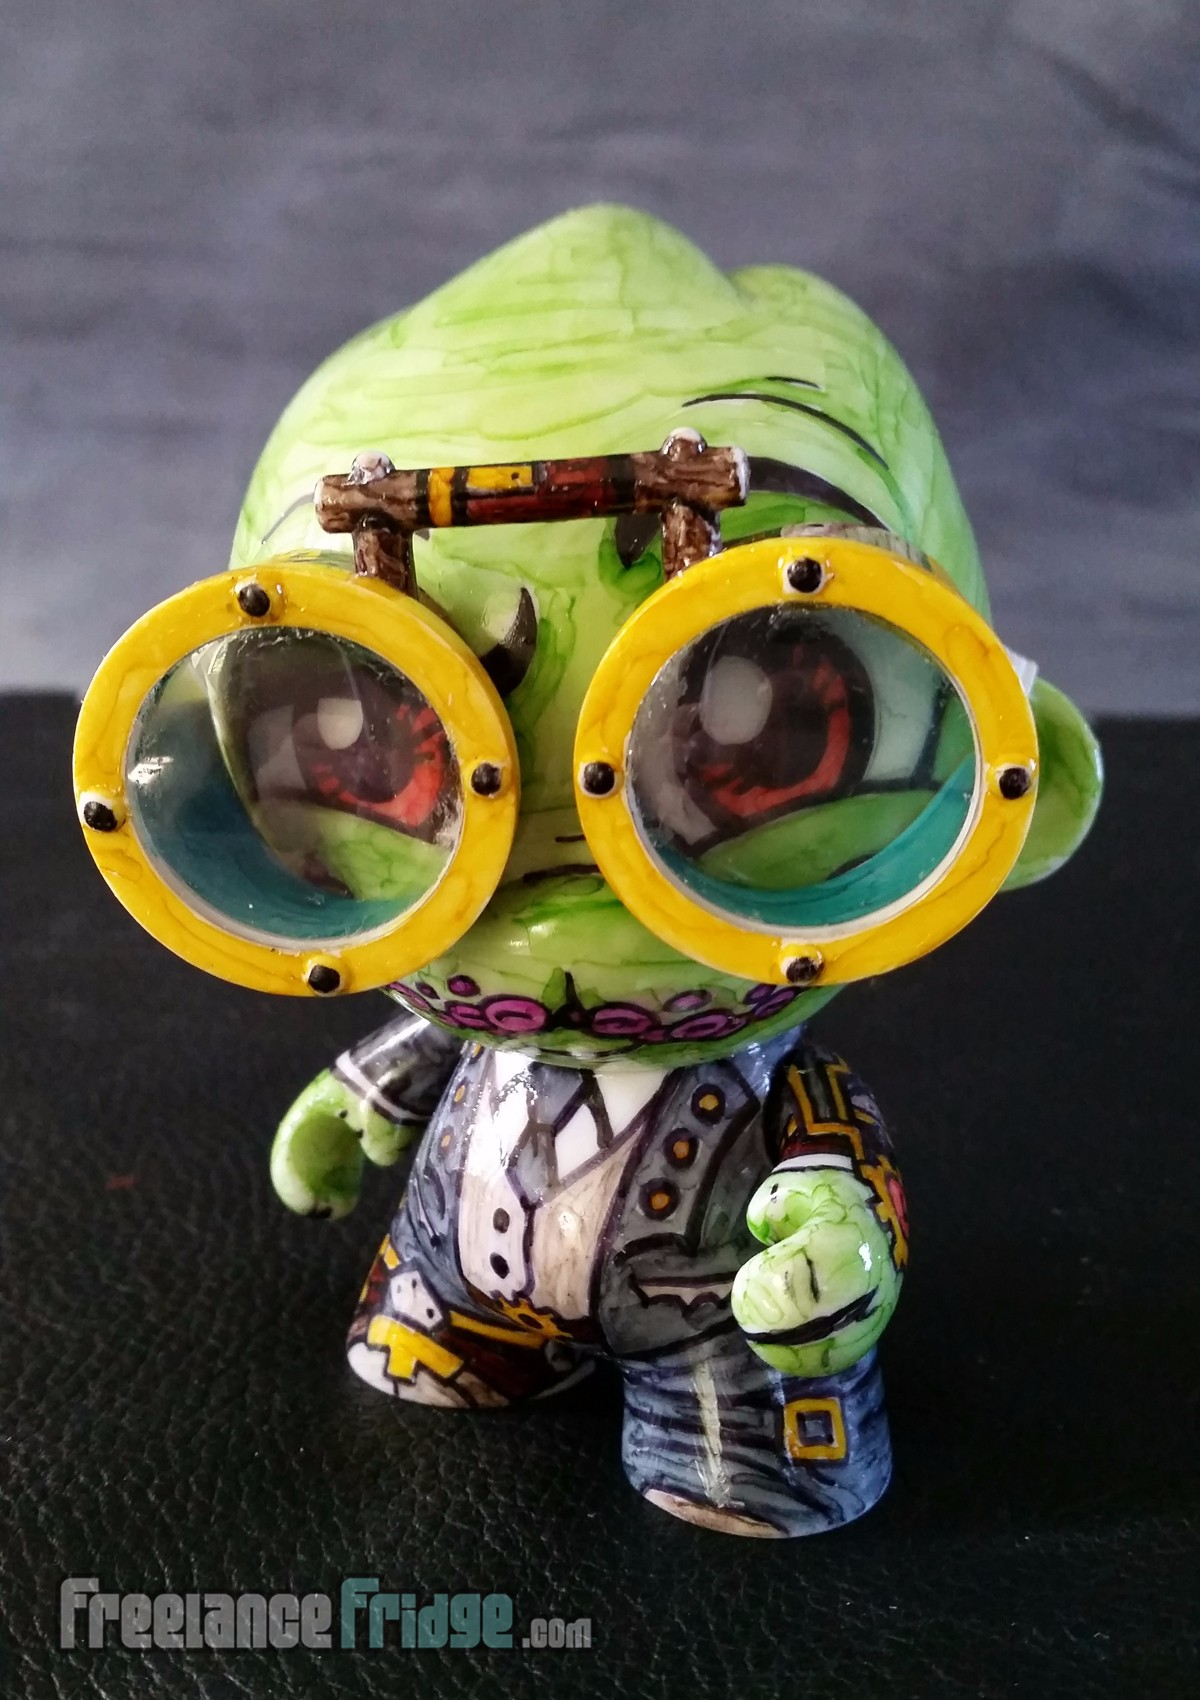 Steampunk Cthulhu with Goggles Custom Drawn KidRobot Foomi Munny Vinyl Character 4 front view wearing goggles